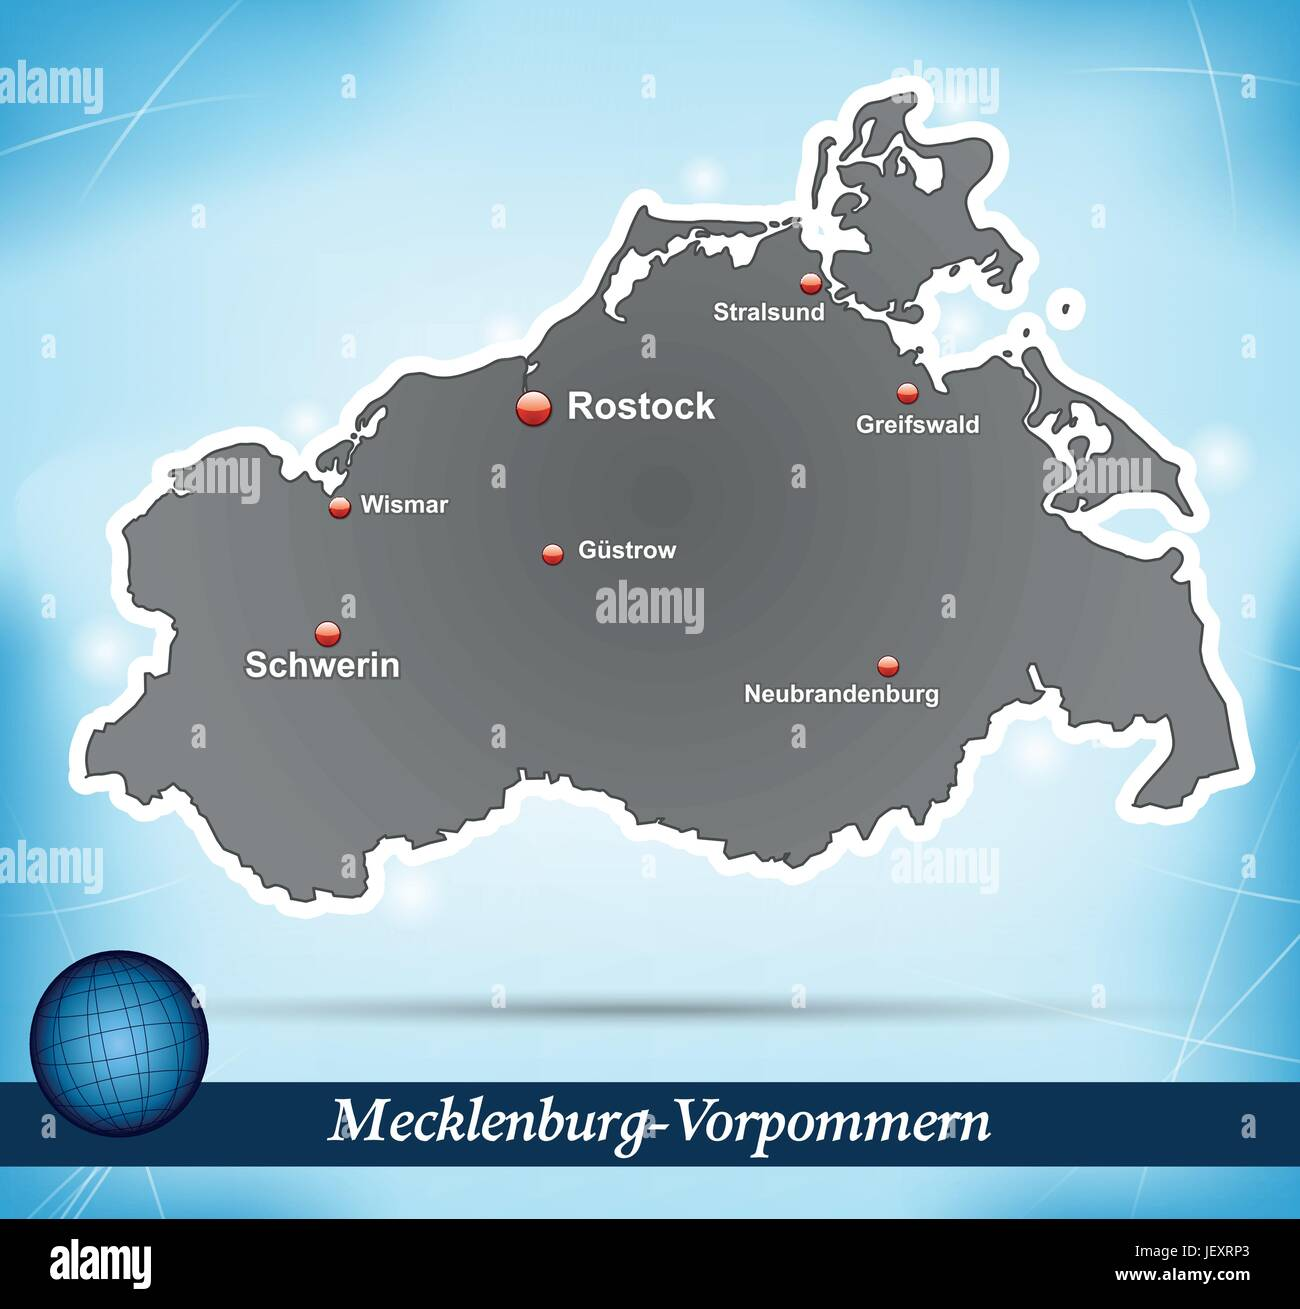 island map of mecklenburg-vorpommern abstract background in blue - Stock Vector